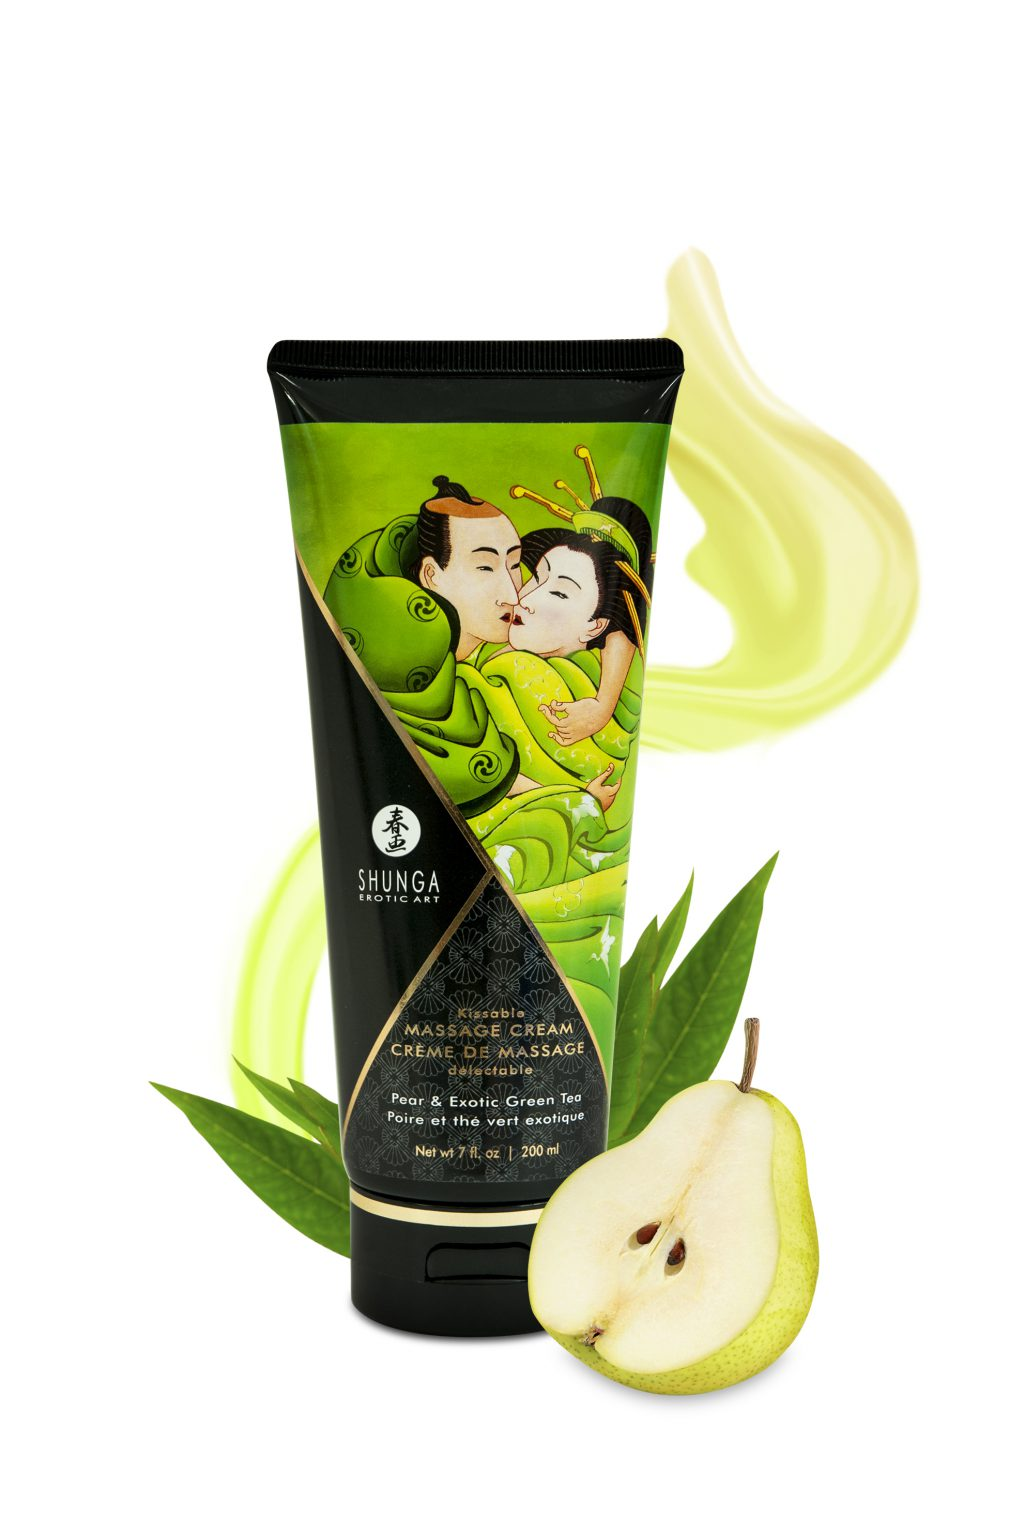 Kissable Massage Cream Pear & Green Tea